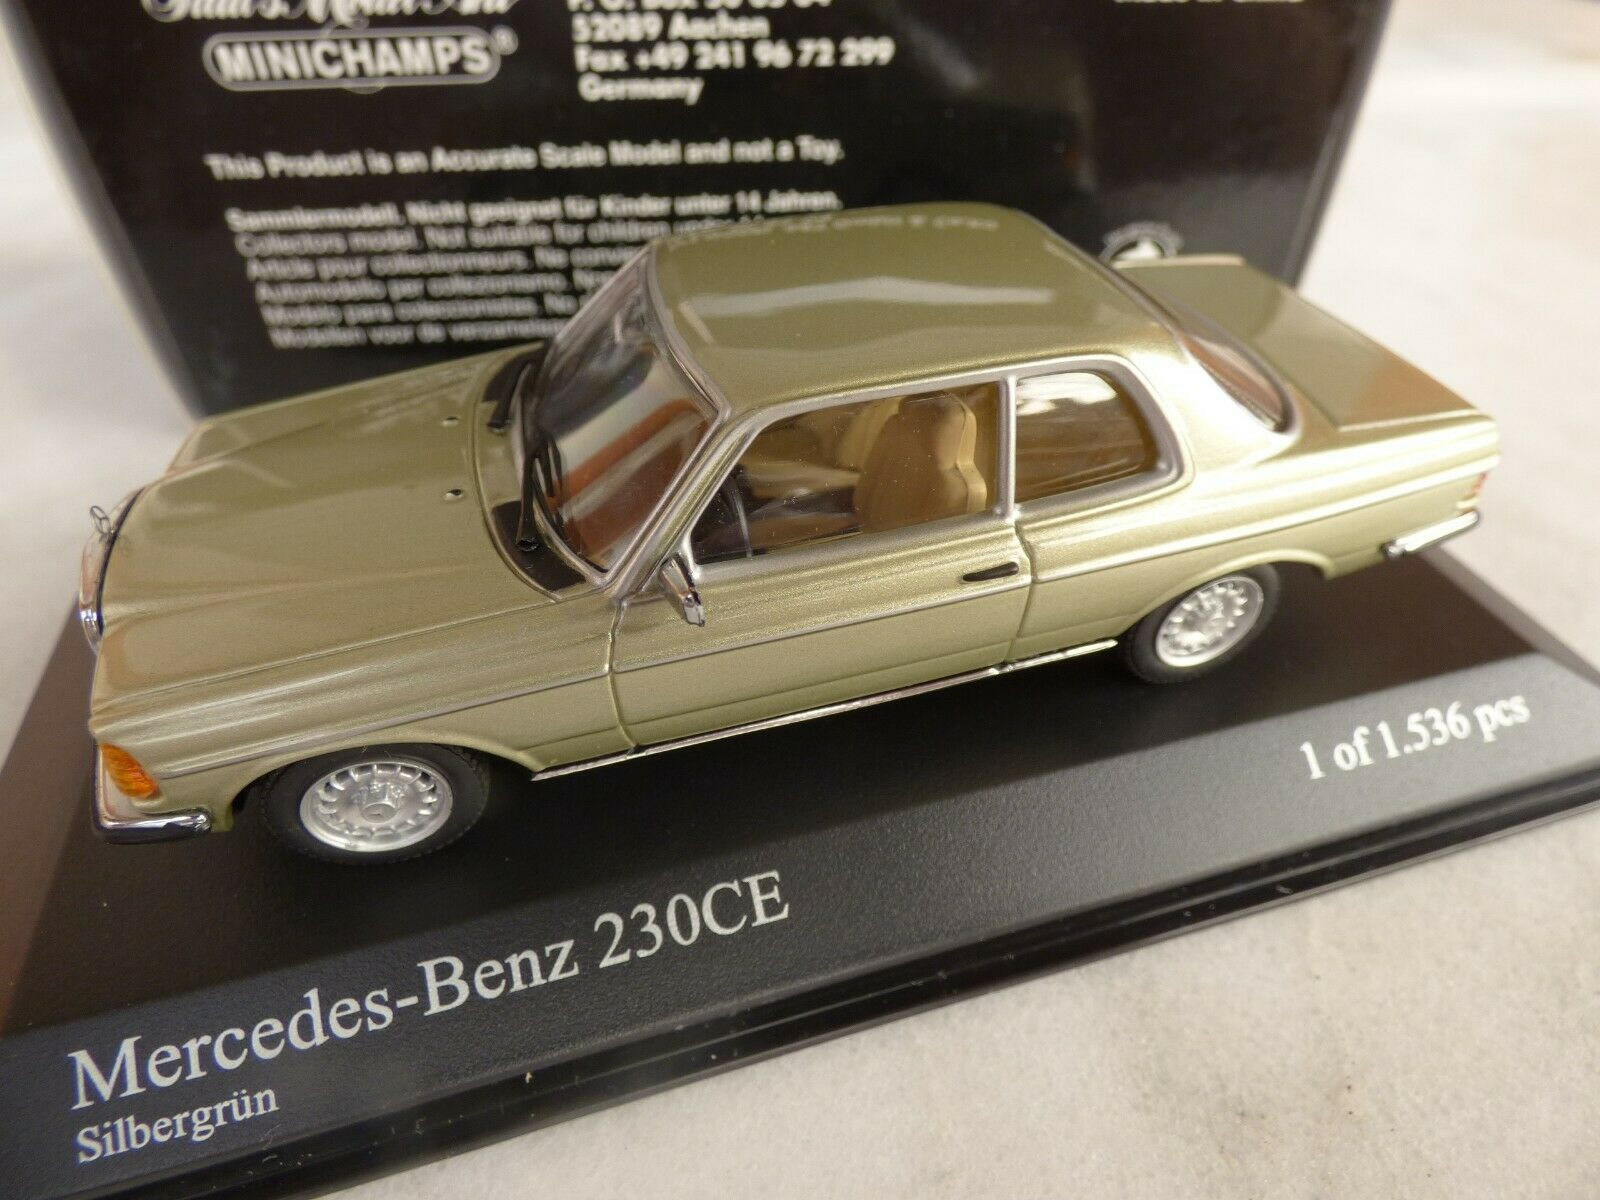 Mercedes Benz 230 CE W123- Silbergrün,Minichamps -1 43,1 of 1.536-4012138051812